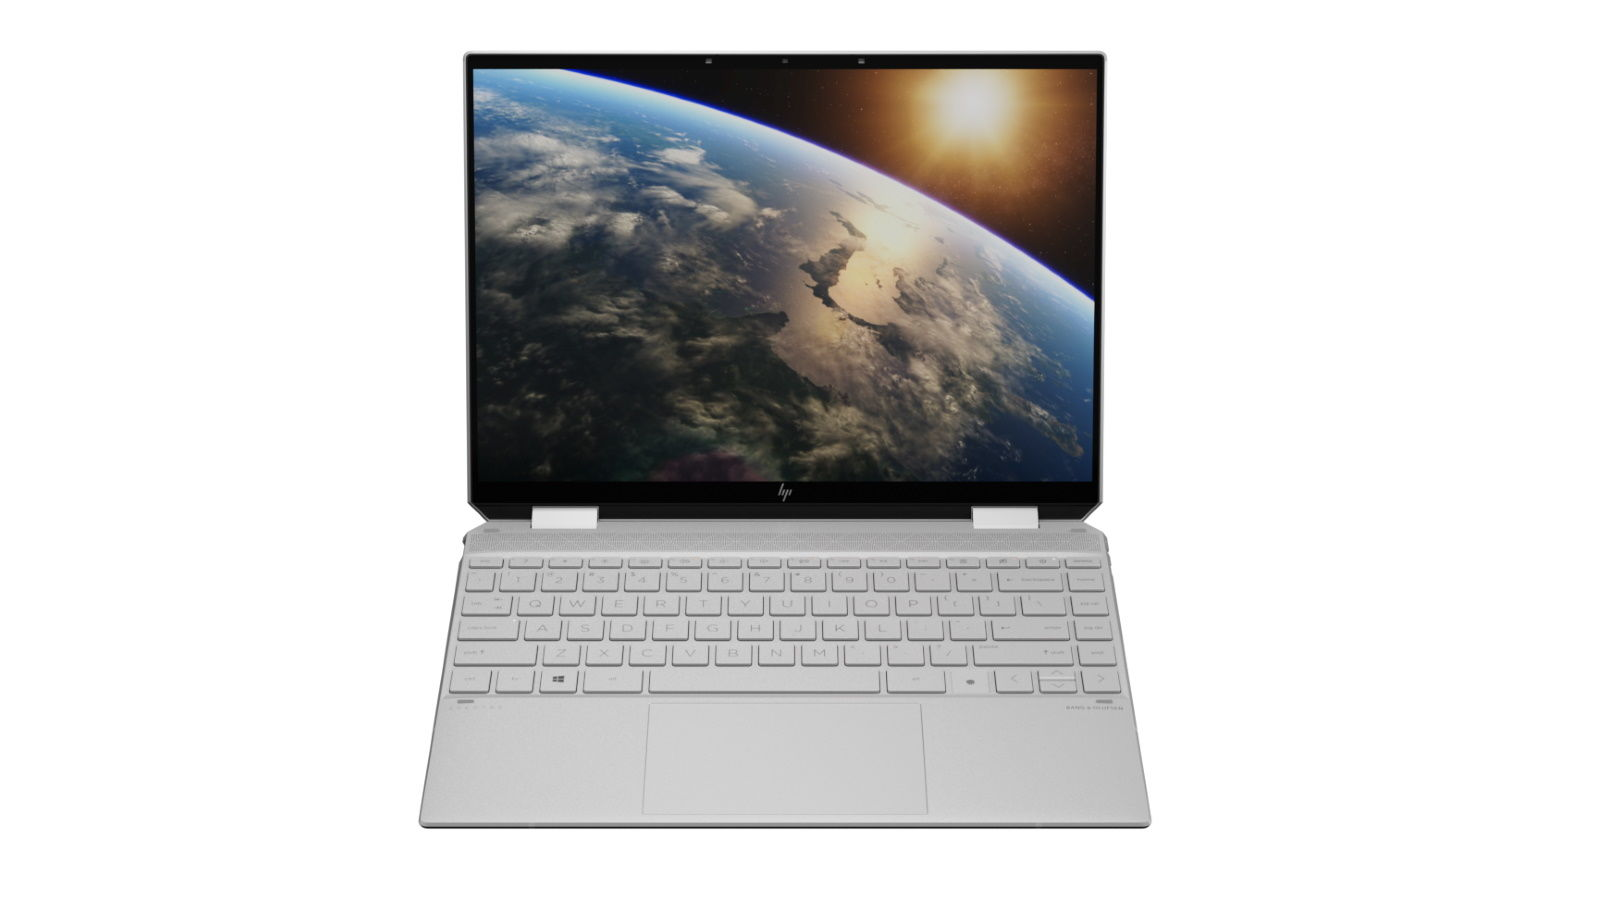 hp spectre x360 14 front facing natural silver